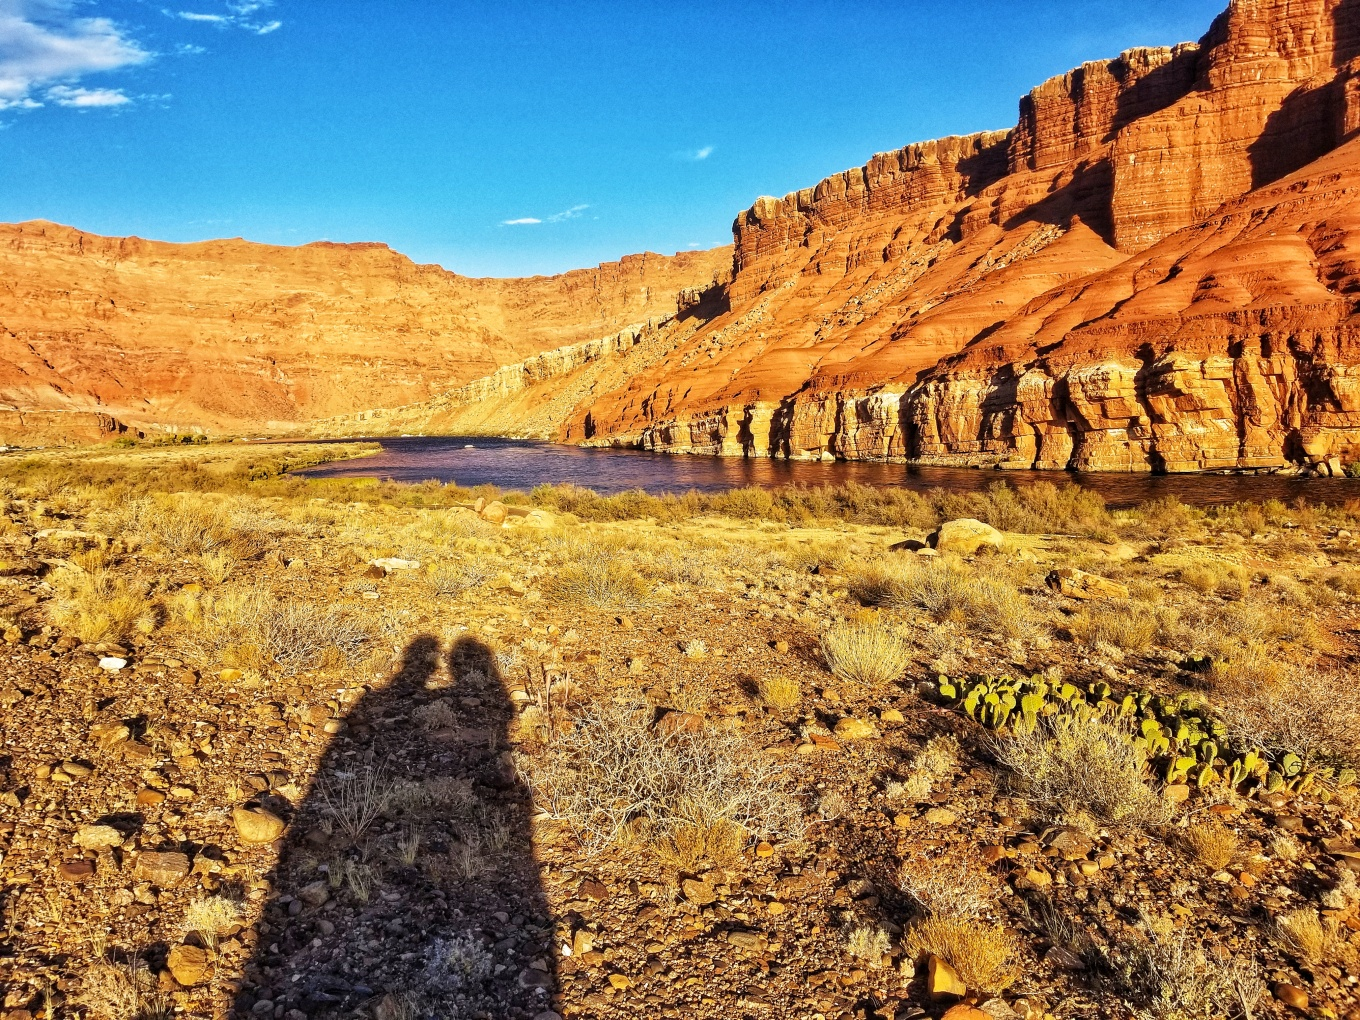 Shadows at Glen Canyon National Recreation Area